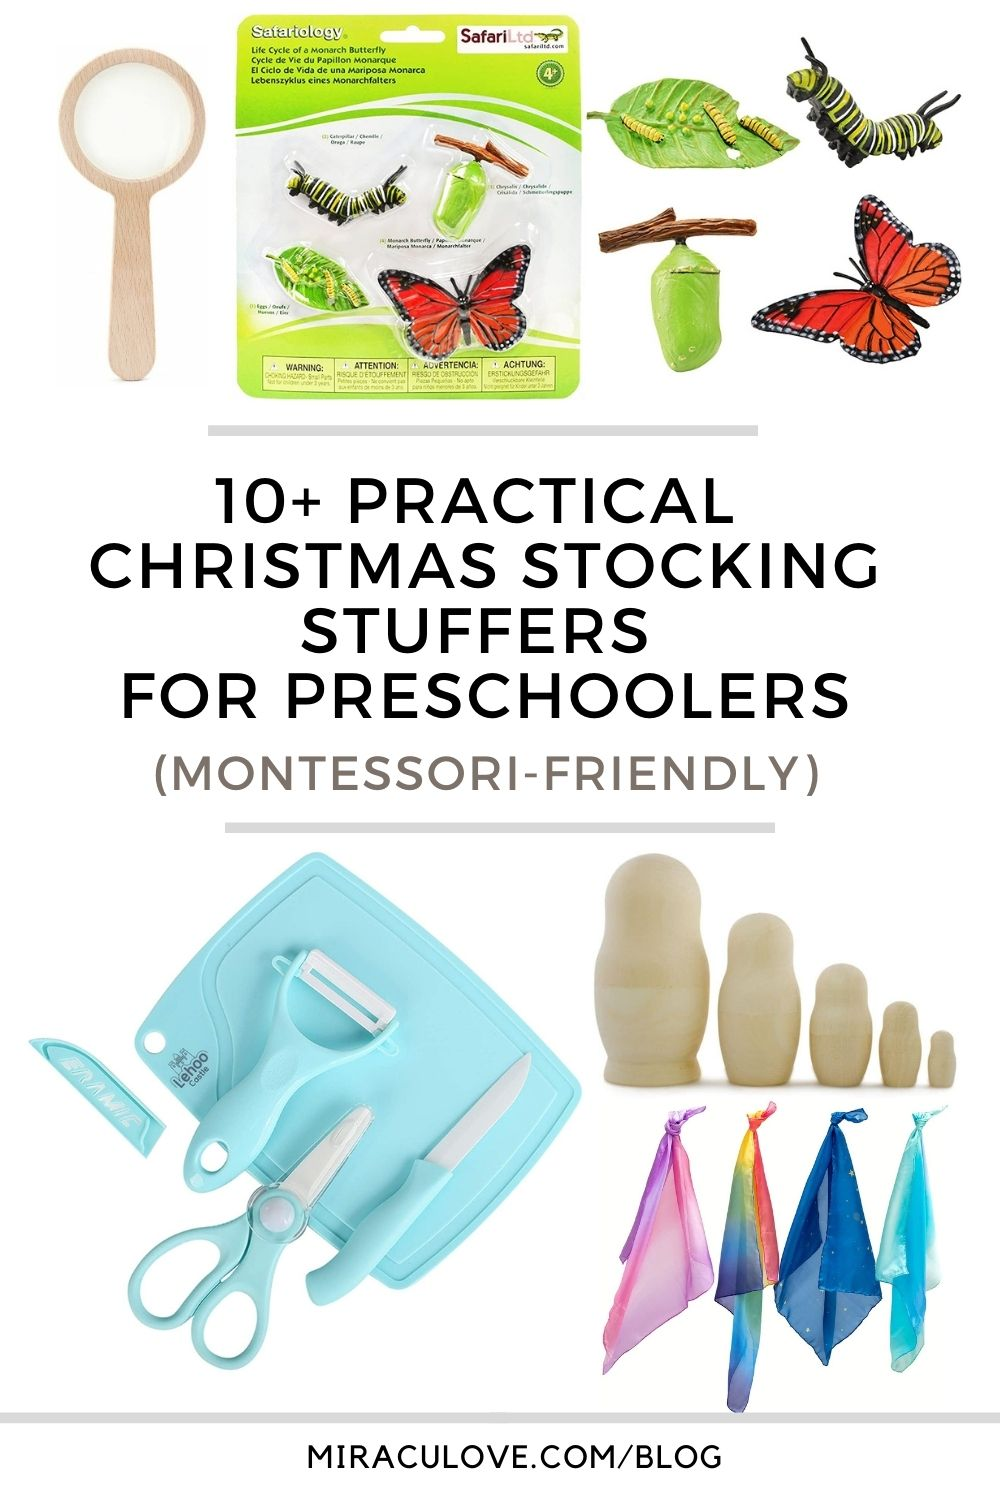 10+ Practical Christmas Stocking Stuffers for Babies, Toddlers & Preschoolers (Montessori-friendly)